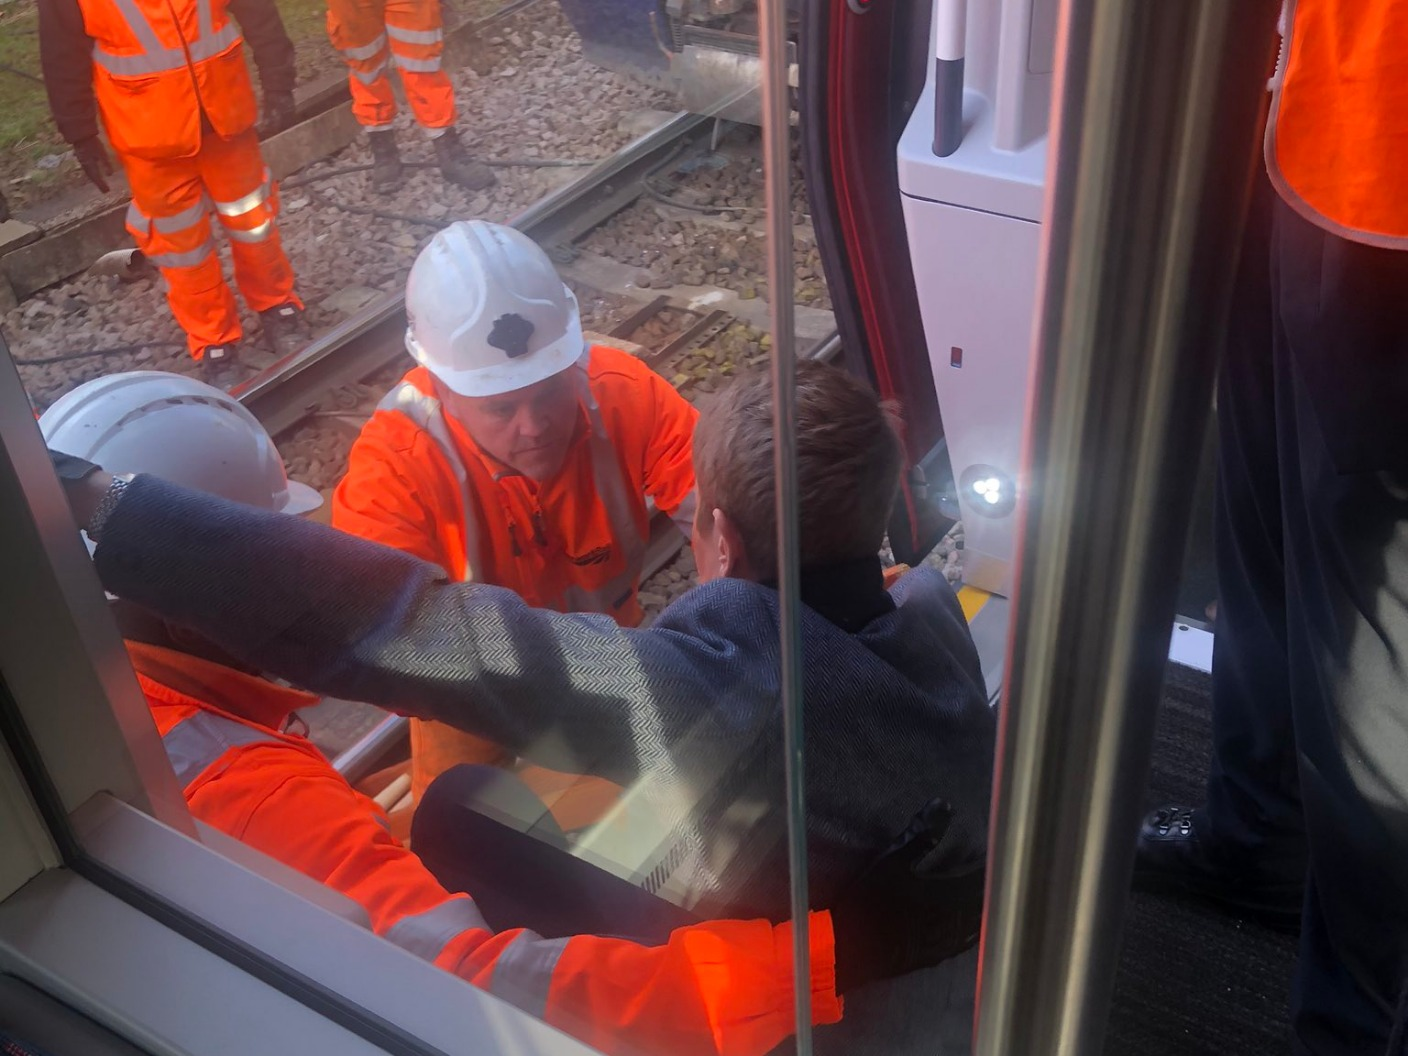 More than 400 passengers stranded for 5 hours on board a new Grande Anglia train Anglia